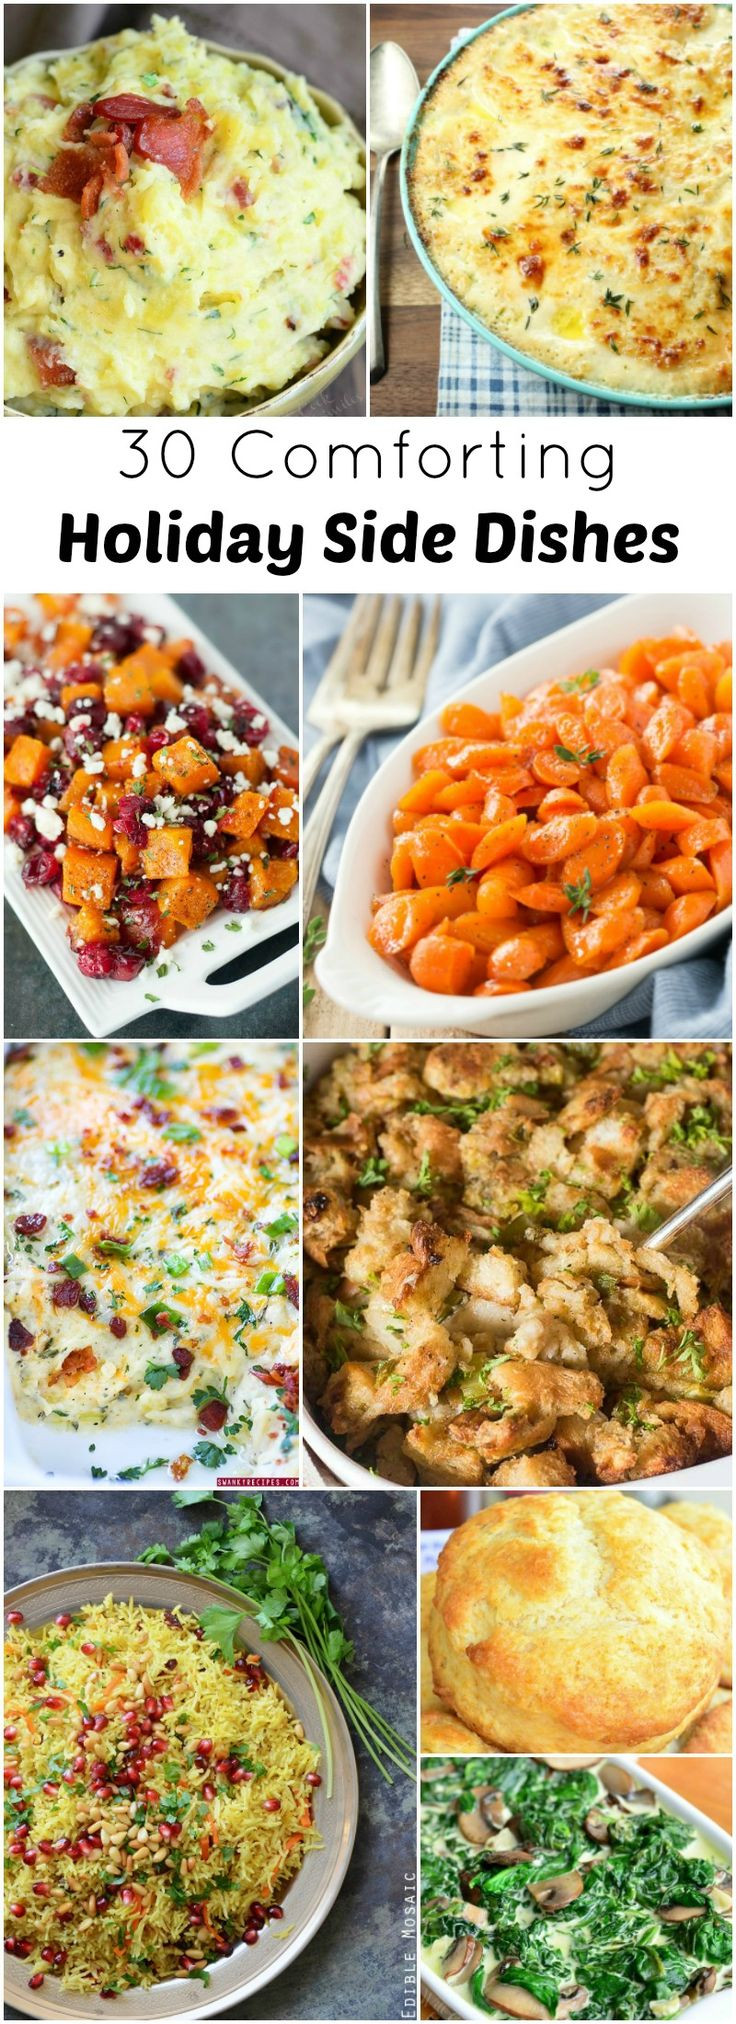 Christmas Side Dishes Pinterest  17 Best ideas about Holiday Side Dishes on Pinterest